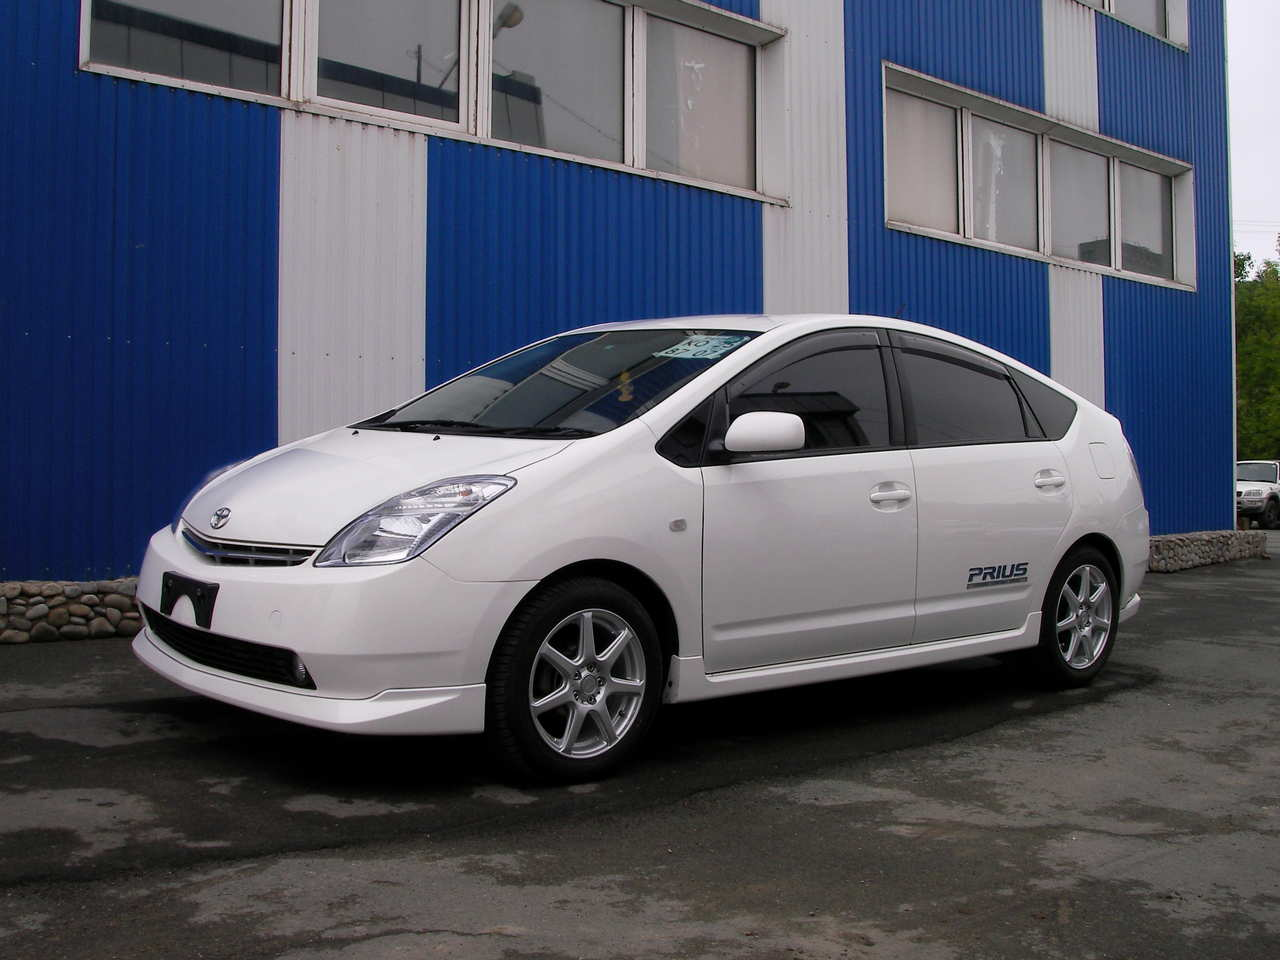 2008 toyota prius pictures ff cvt for sale. Black Bedroom Furniture Sets. Home Design Ideas